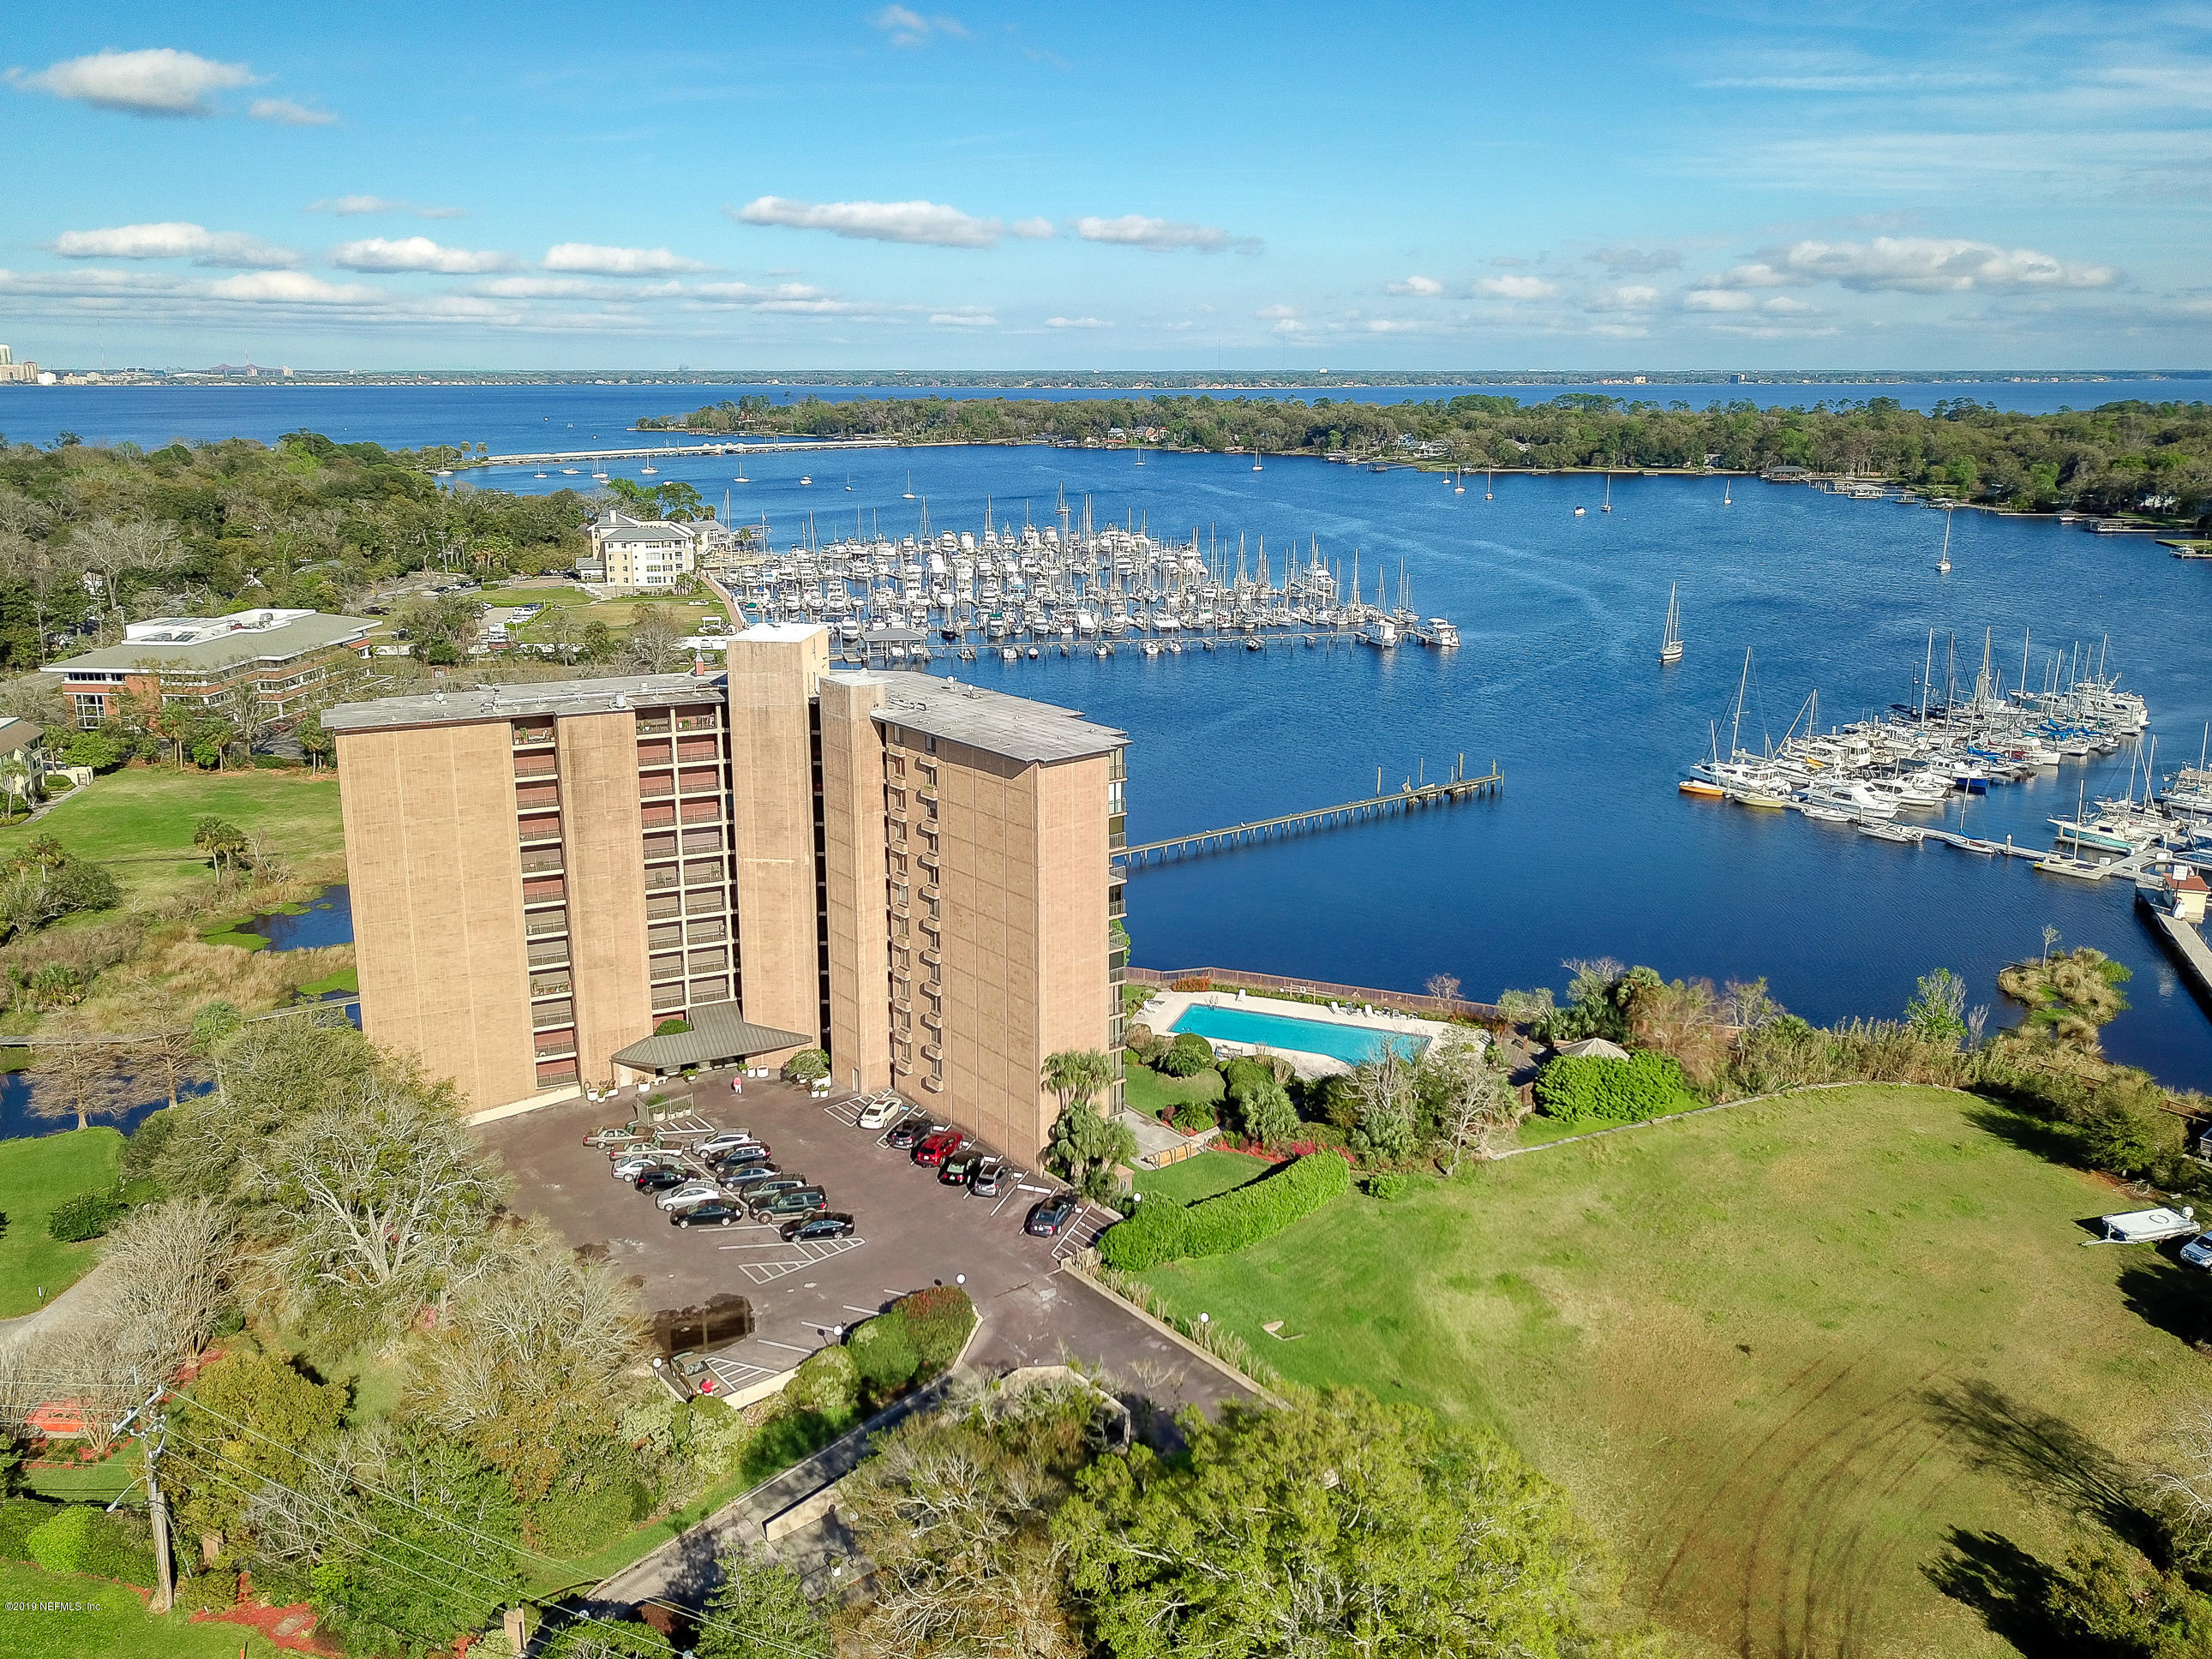 4401 LAKESIDE, JACKSONVILLE, FLORIDA 32210, 2 Bedrooms Bedrooms, ,2 BathroomsBathrooms,Residential - condos/townhomes,For sale,LAKESIDE,1017907